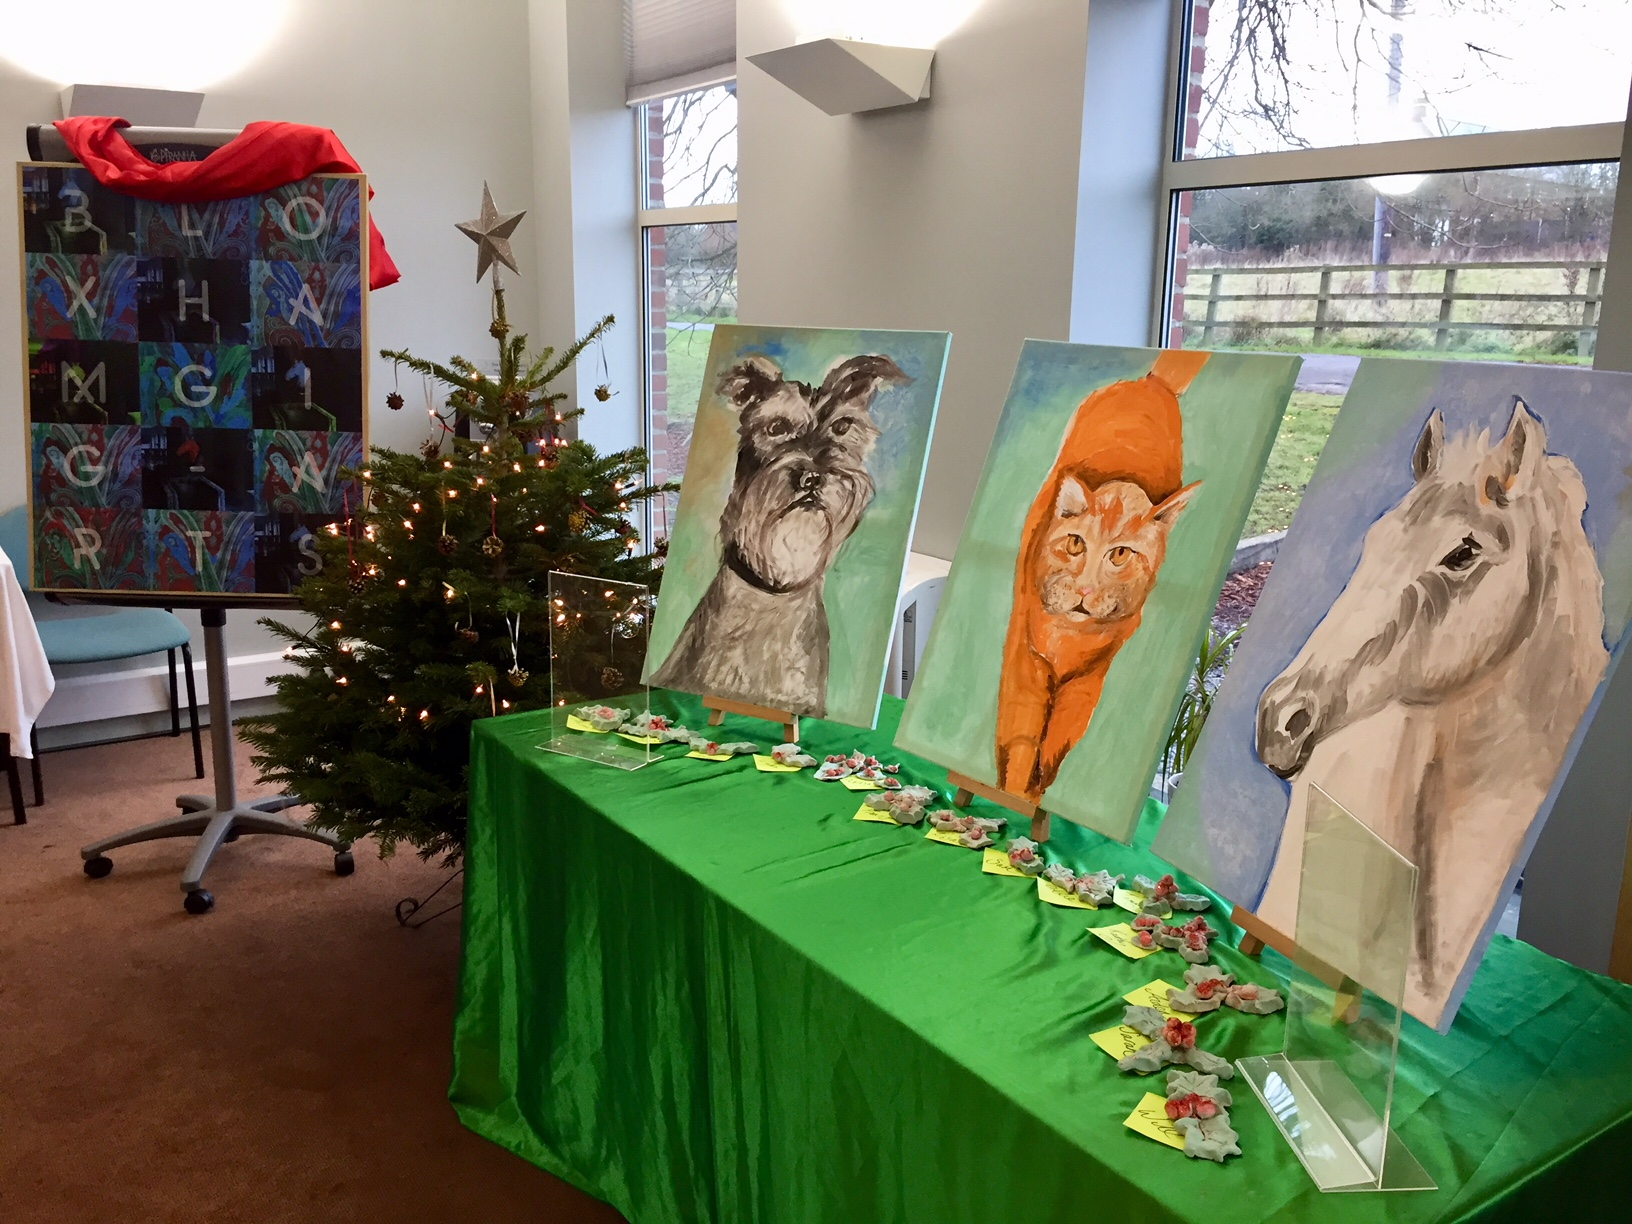 The Bloxham Gig-Arts exhibition of artworks will go in tour around Banbury in esrly 2018.